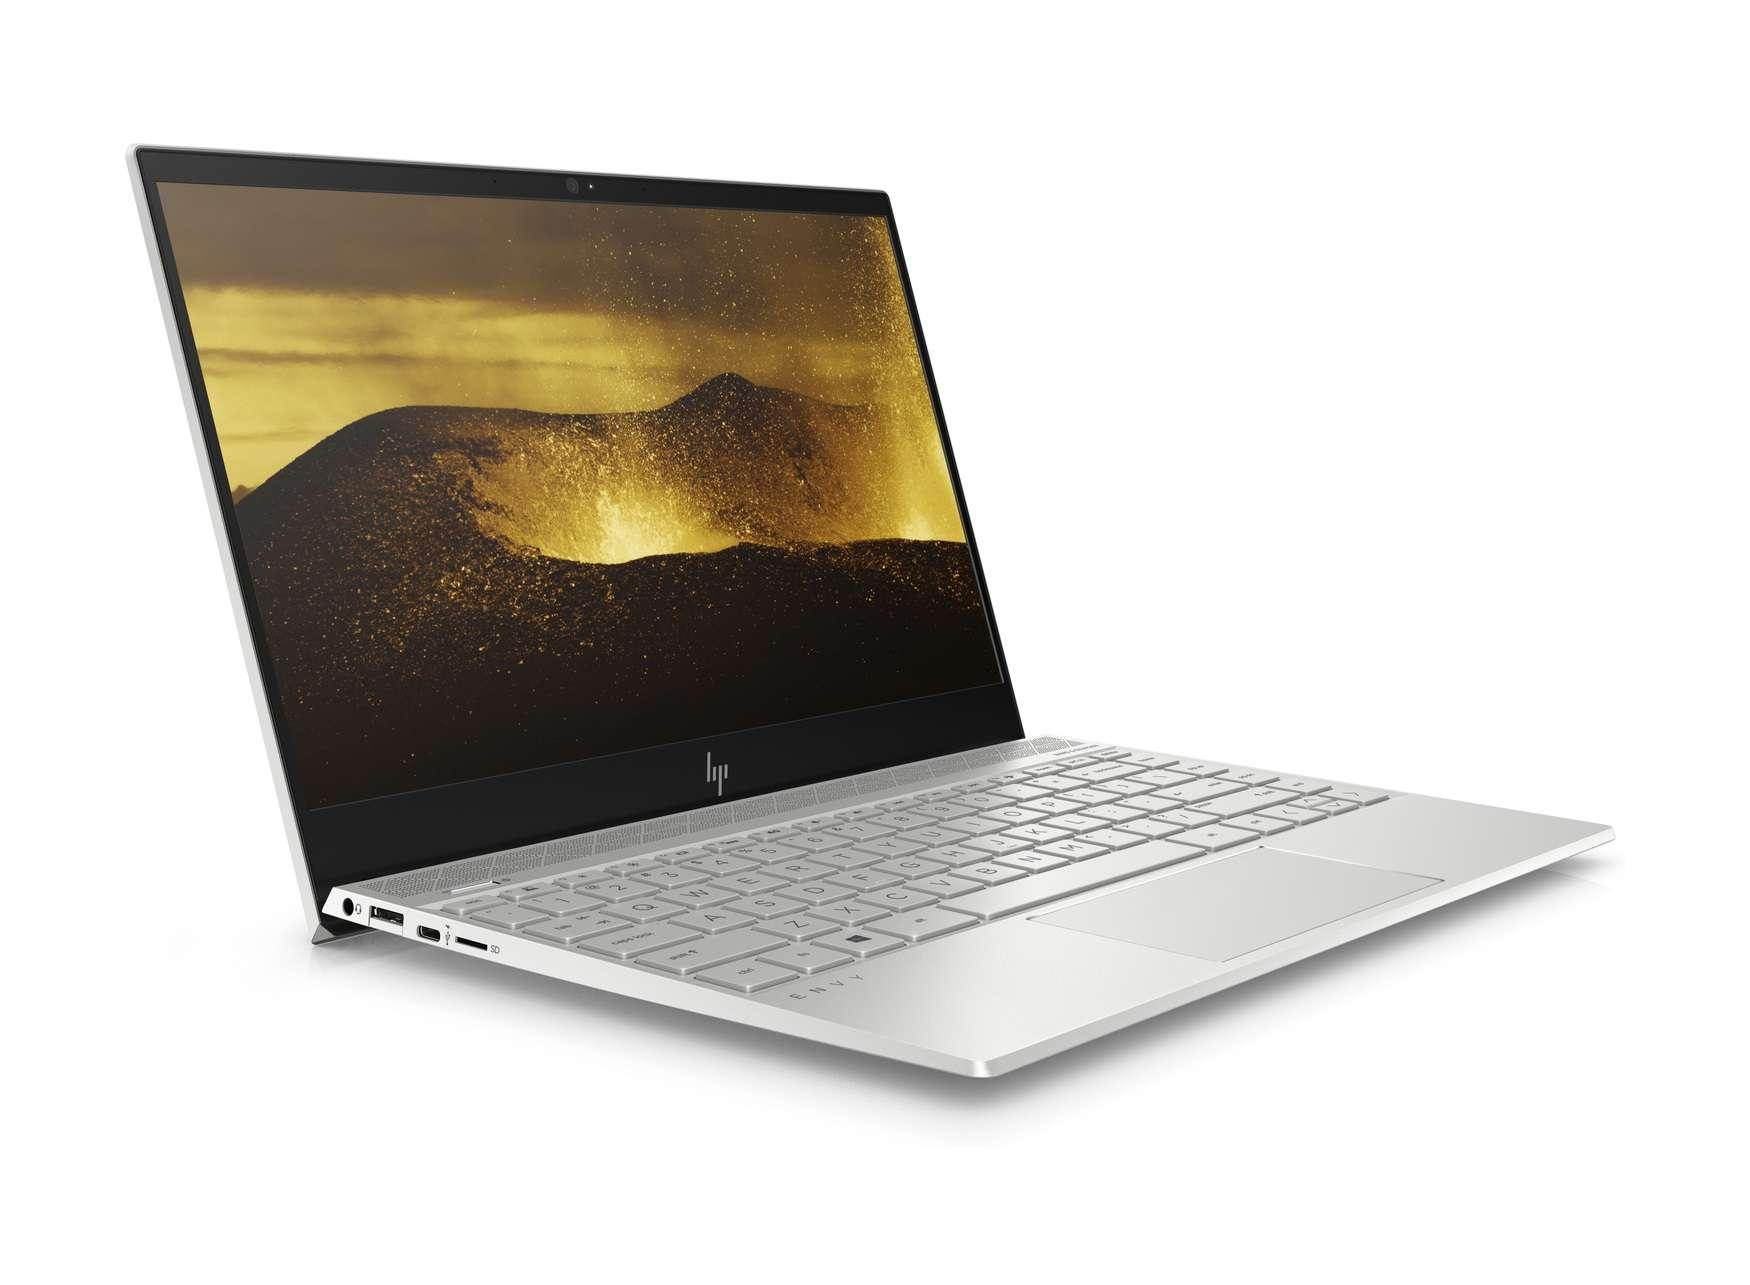 Hp Laptops In Nepal At Best Price Stiker Laptop Pc Intel I3 I5 Nvidia Envy 13 8th Gen Ultrabook 8gb 256gb Ssd 133